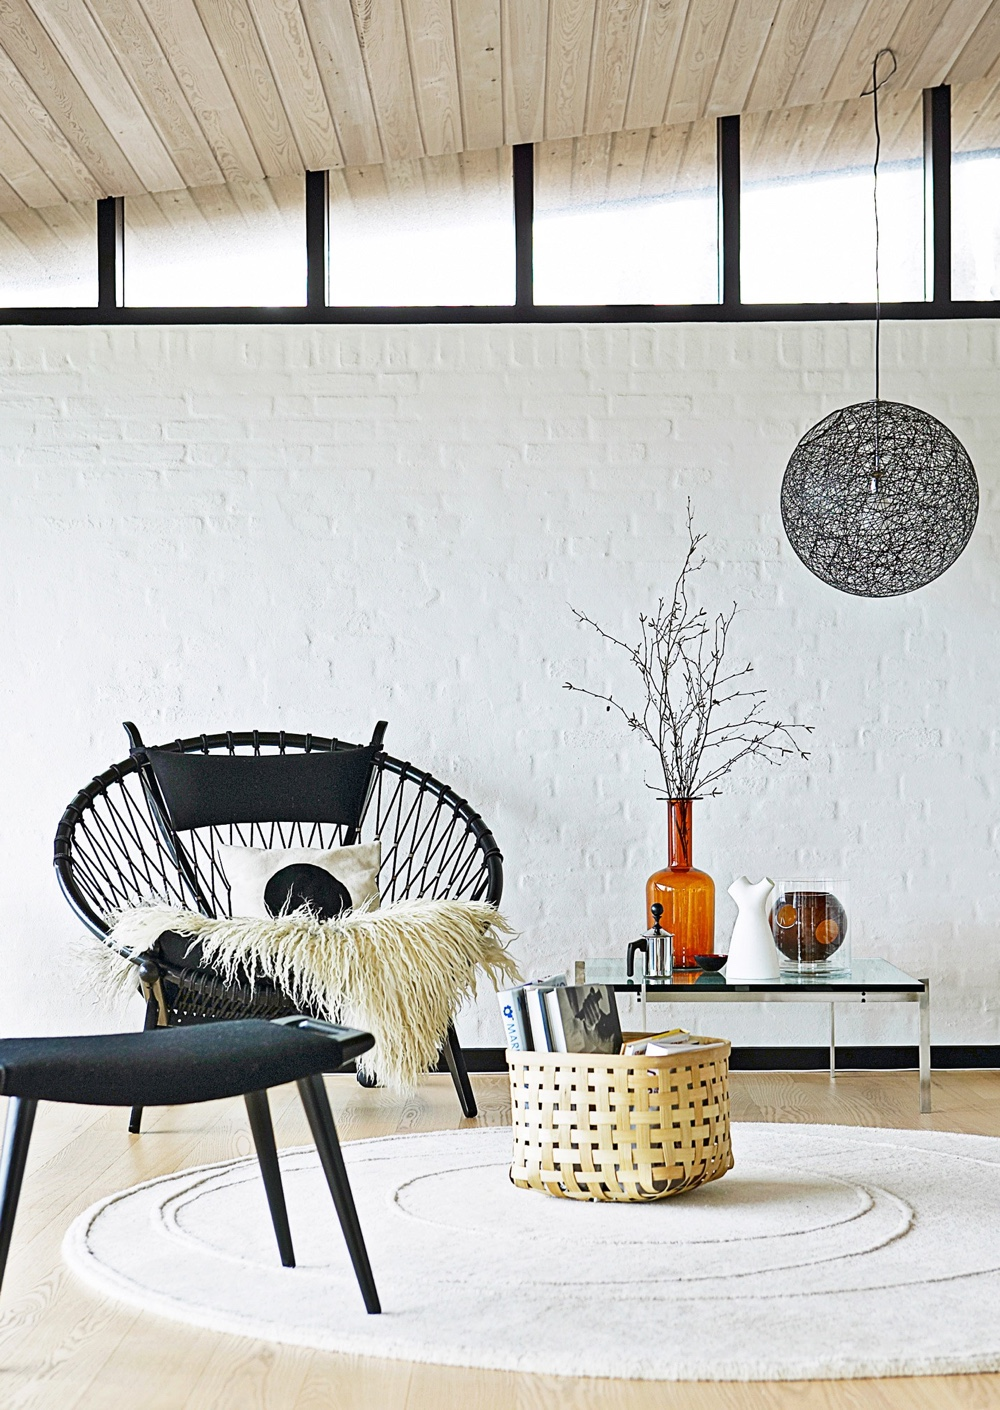 PP130 Circle Chair by Hans J. Wegner.